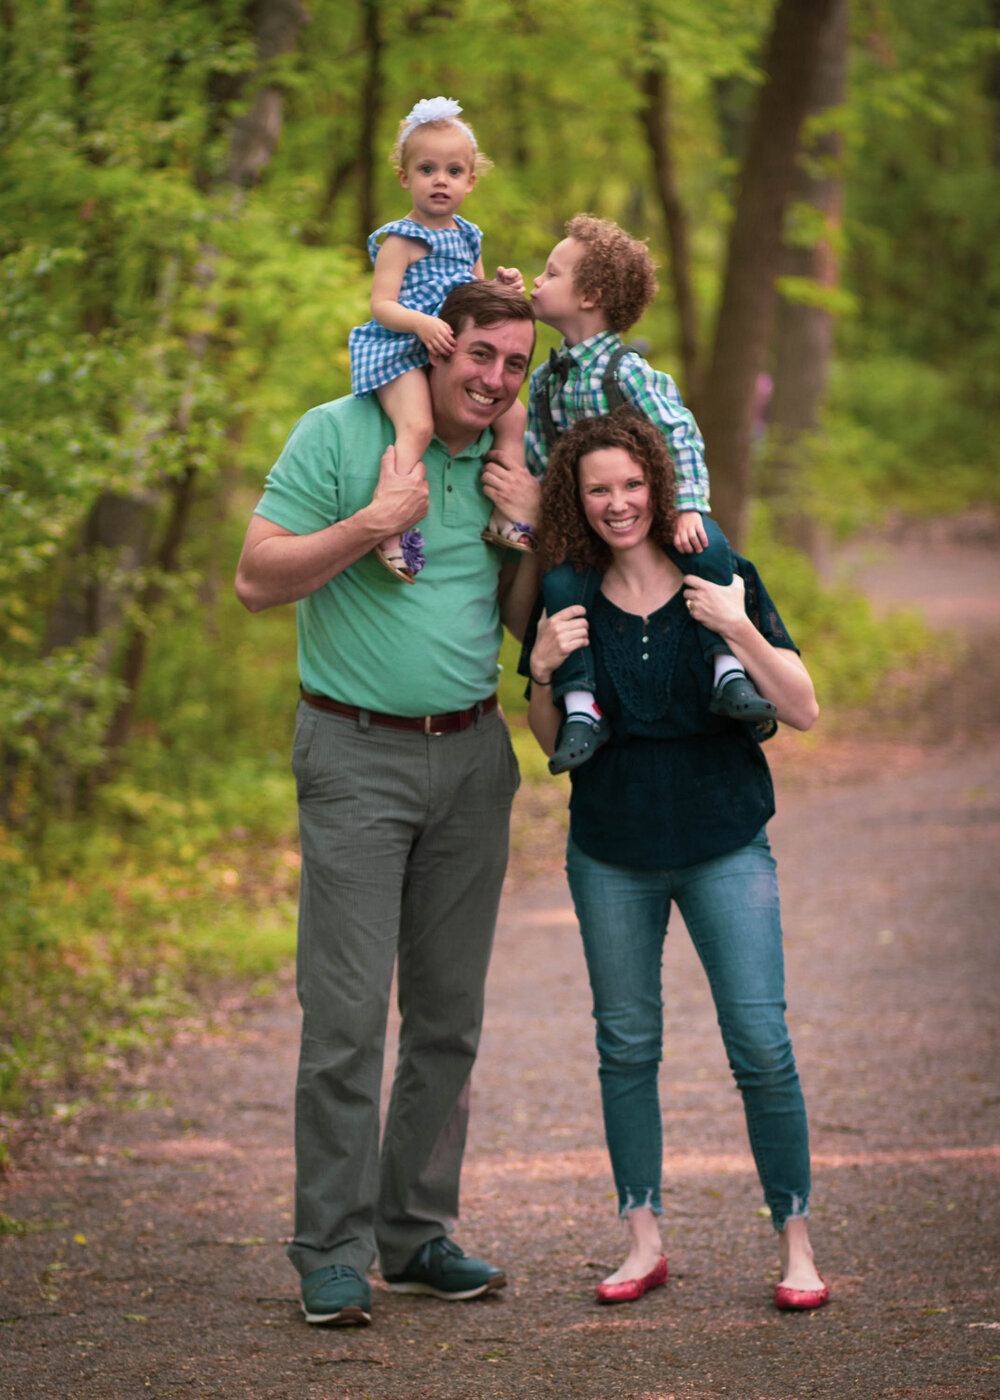 family photography session with two kids in Woodbury MN